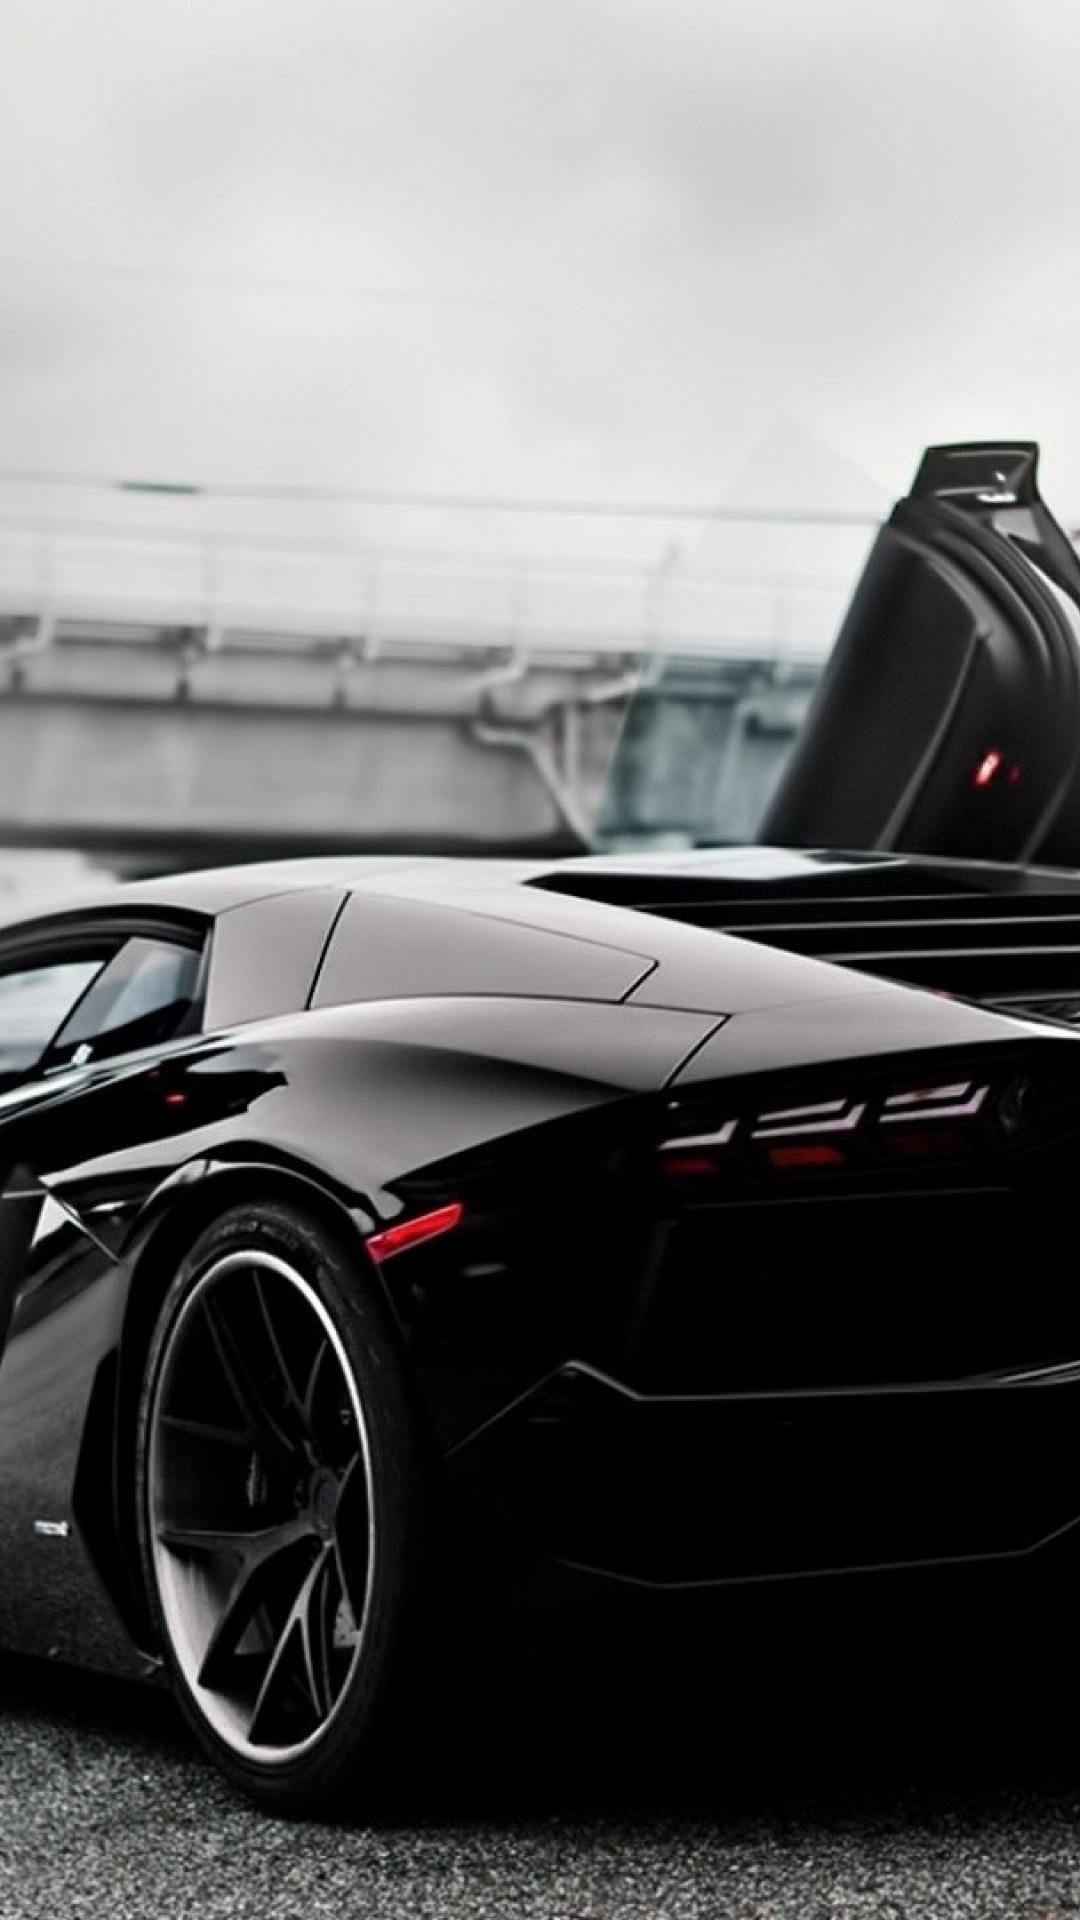 lamborghini aventador wallpaper hd black. car lamborghini aventador black wallpaper hd